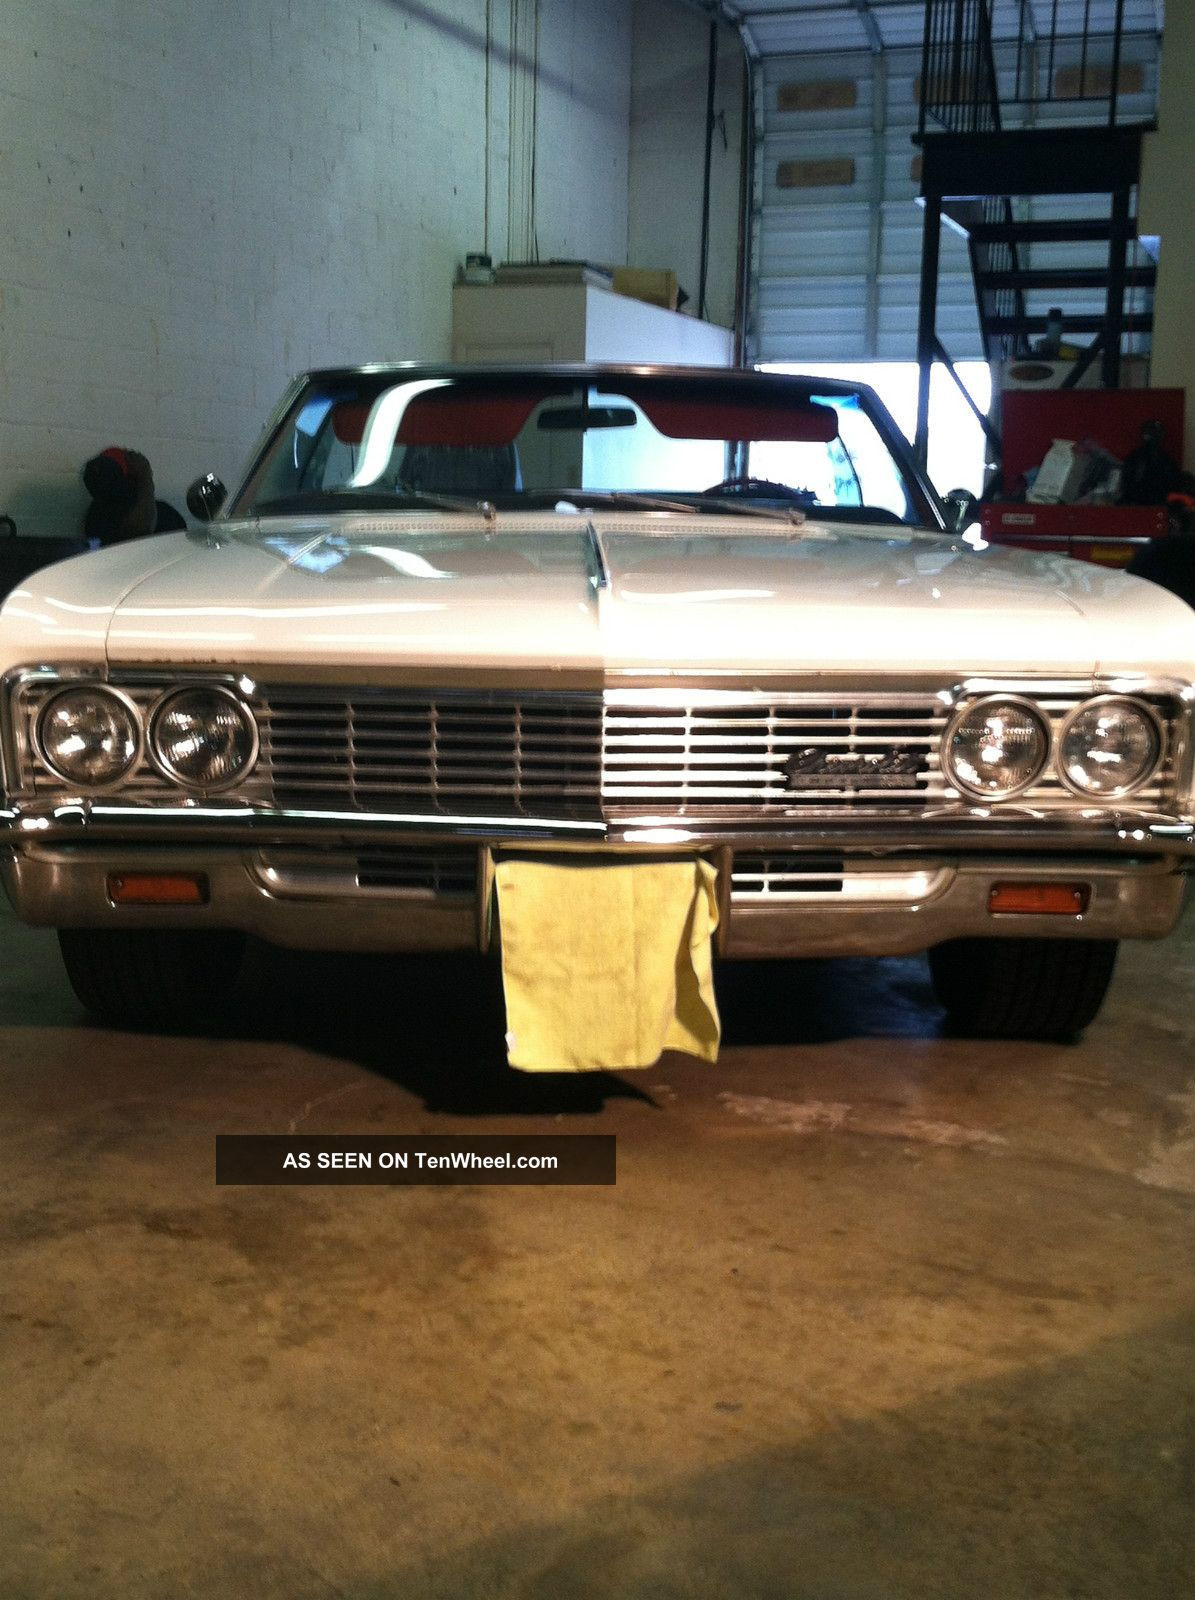 1966 Chevrolet Impala Ss 427 Convertible Impala photo